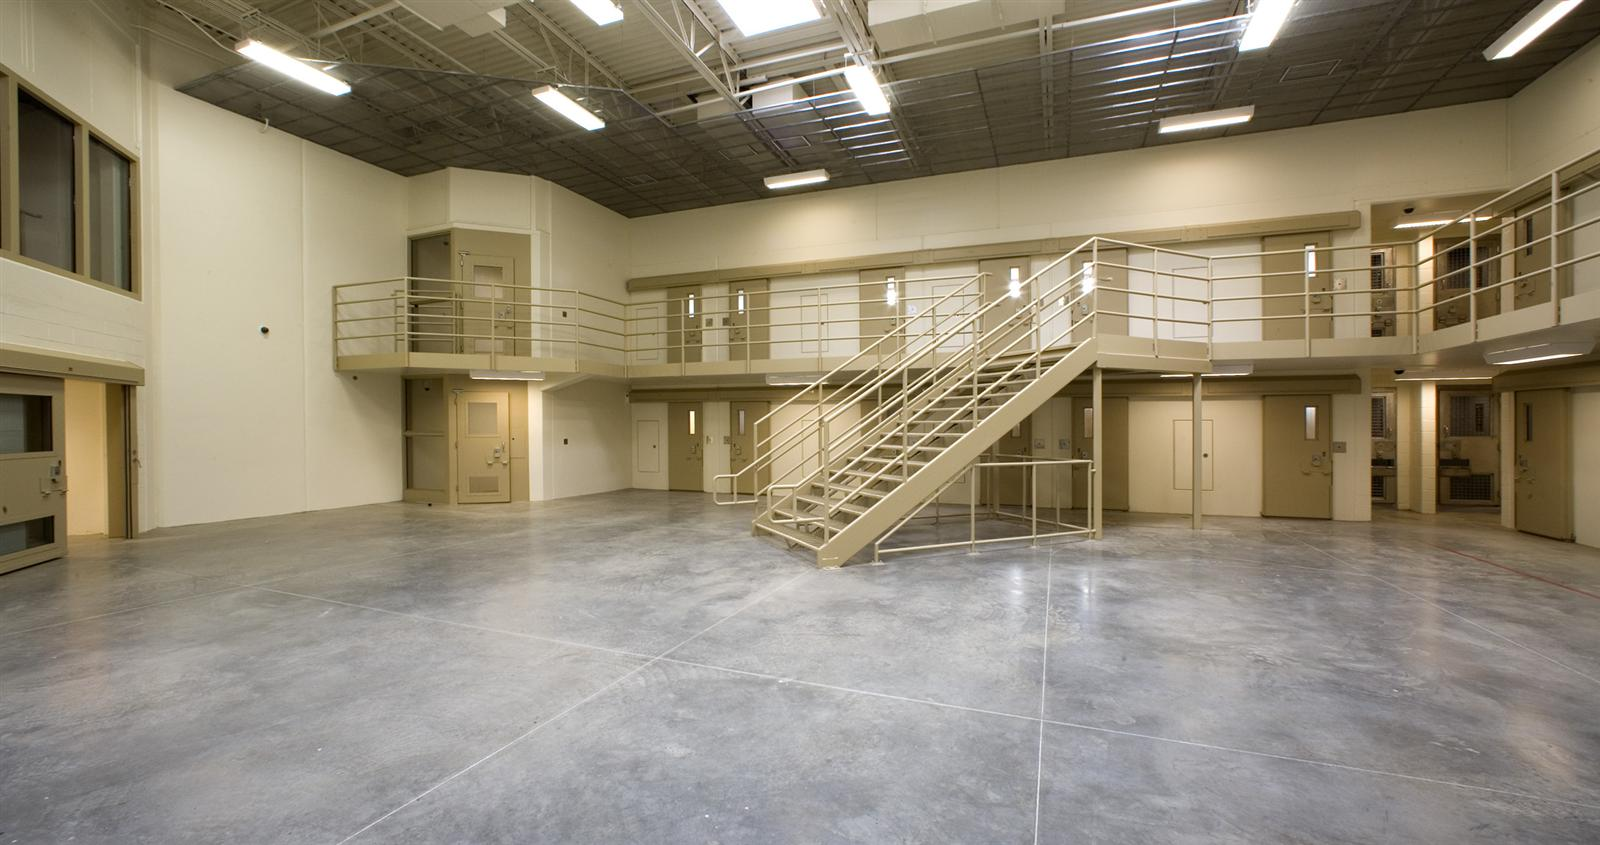 2164-north-close-custody-facility-expansion-2253.jpg